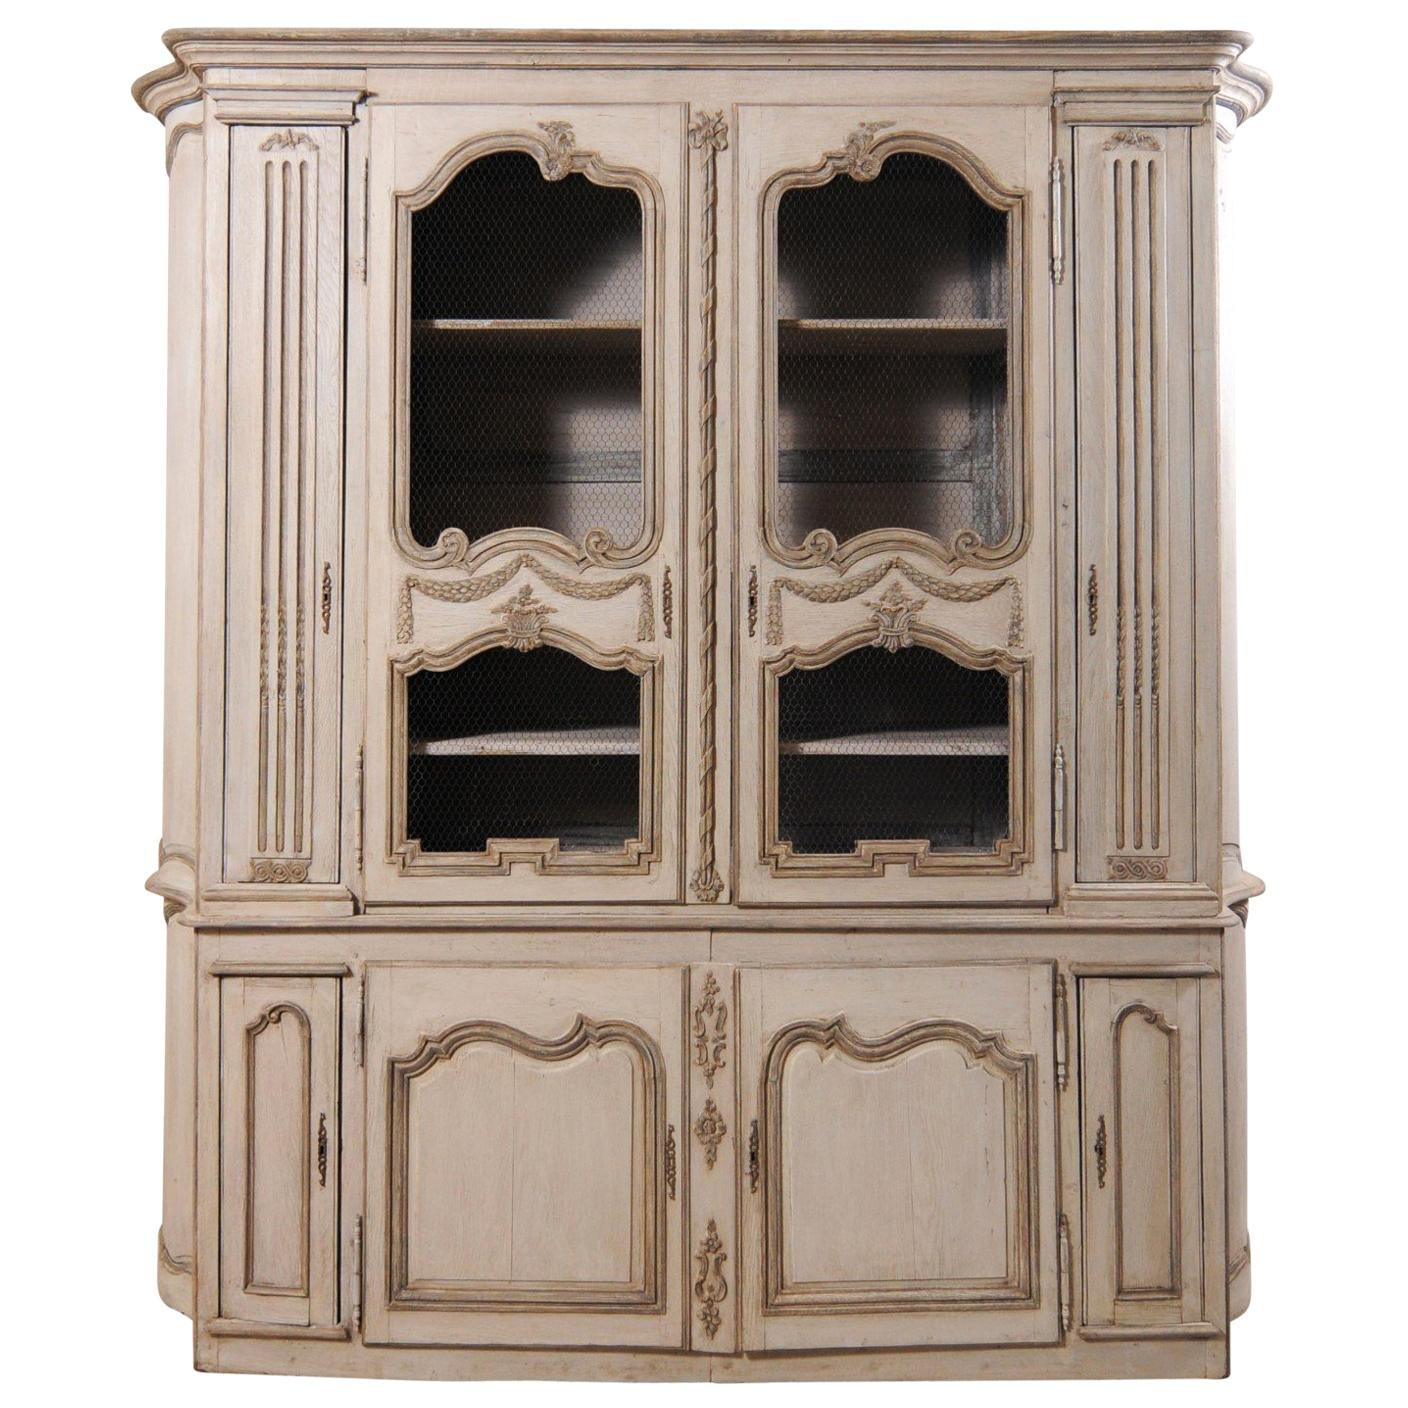 Large French Carved and Painted Wood Display and Storage Cabinet